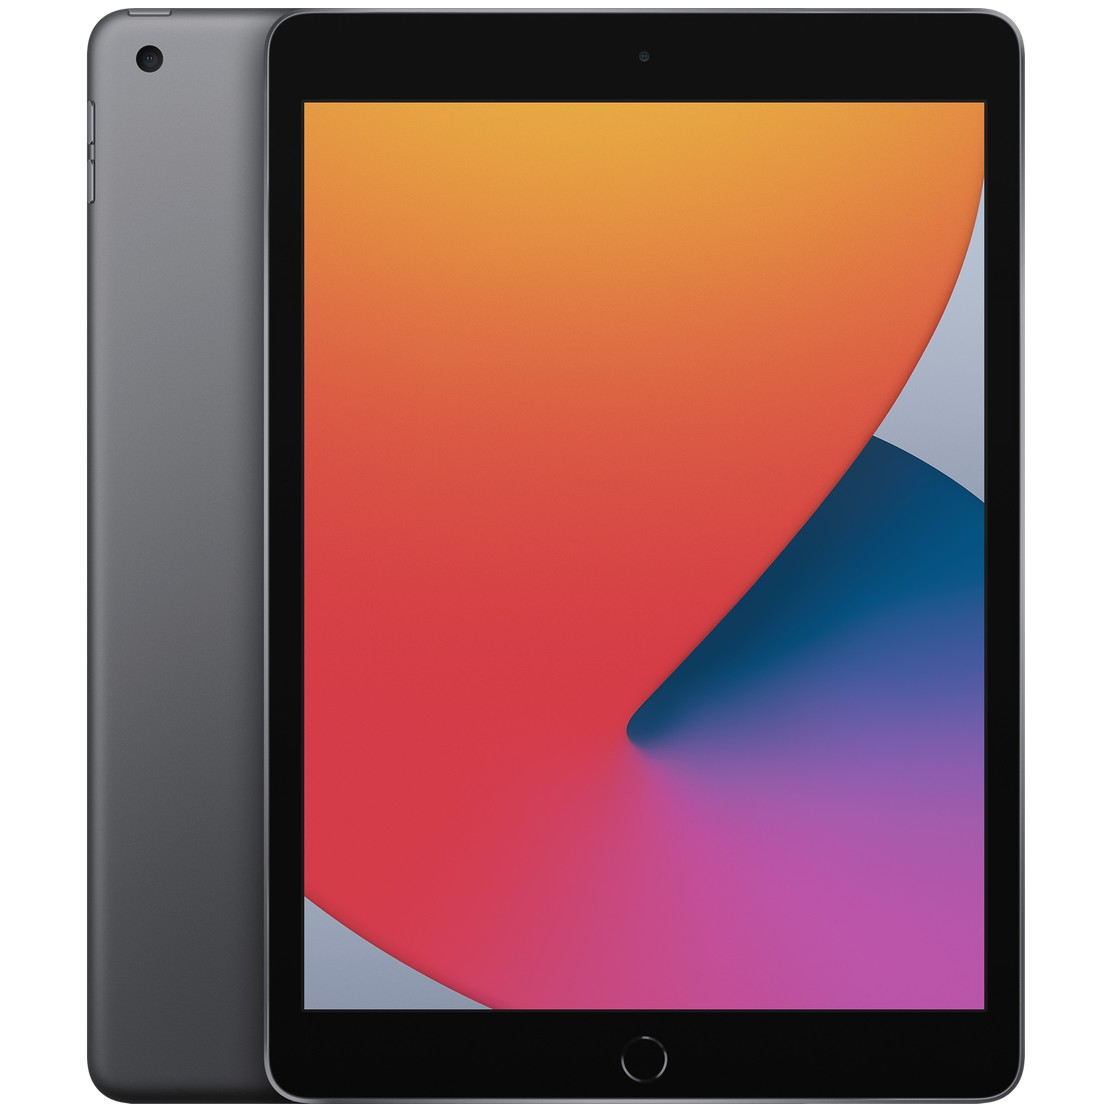 Apple iPad 10.2 (2020) 128GB Wifi with Screen Protector and Folding Case (Black) - Space Gray